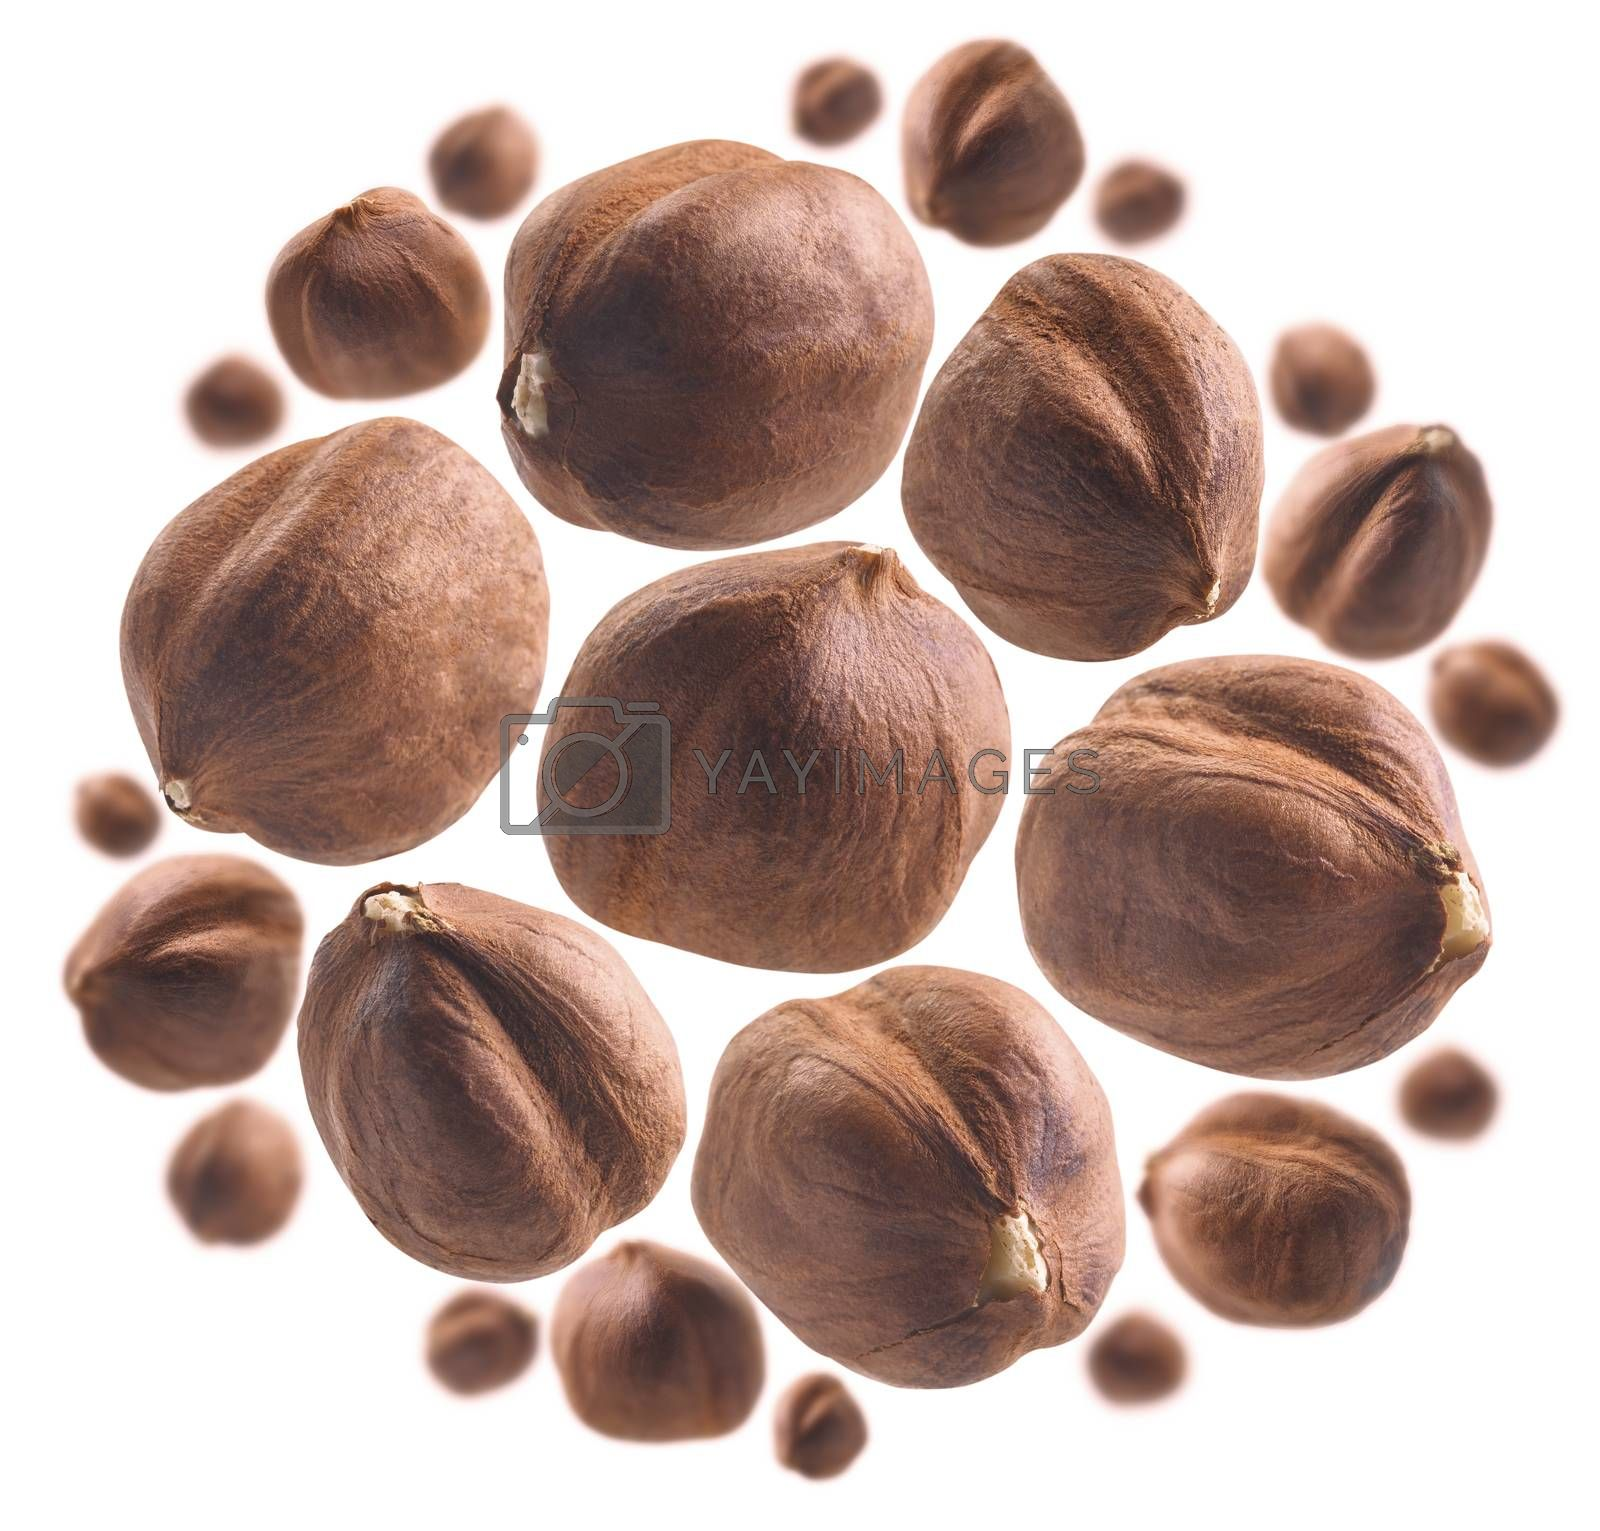 Peeled hazelnut levitates on a white background.